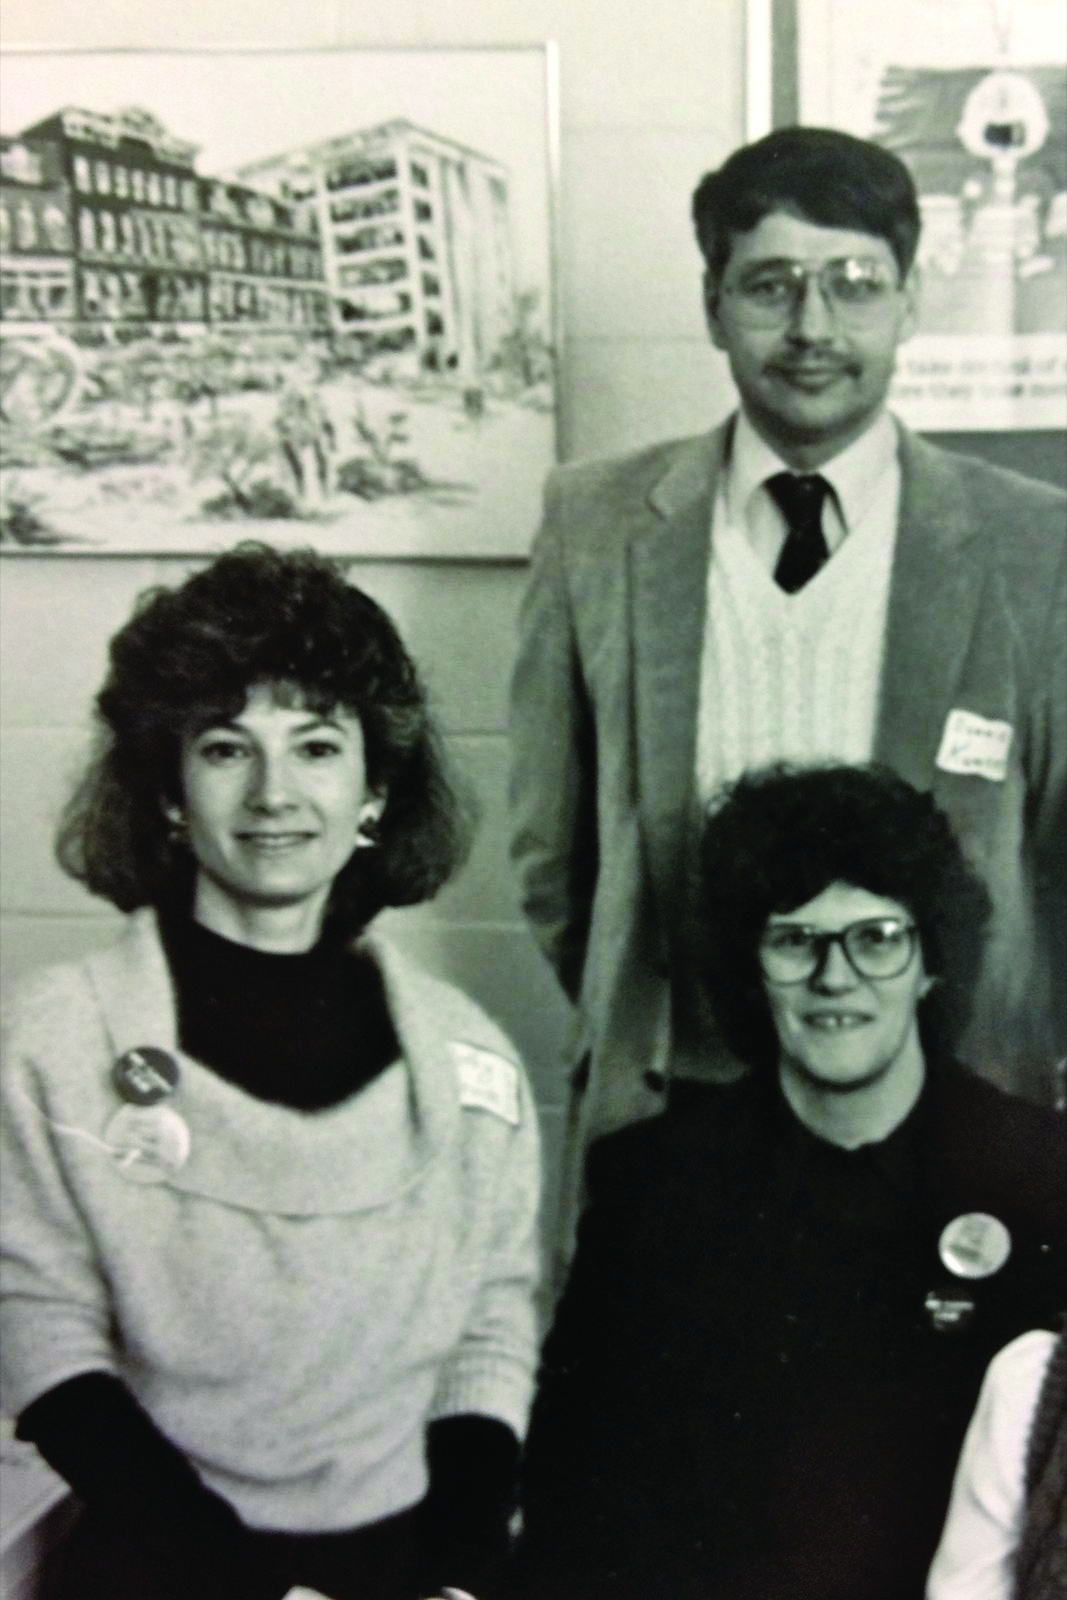 Cathy Glaude, Doris Ray and Dennis Kunces (back) at a professional development training in Machias, Maine 1988